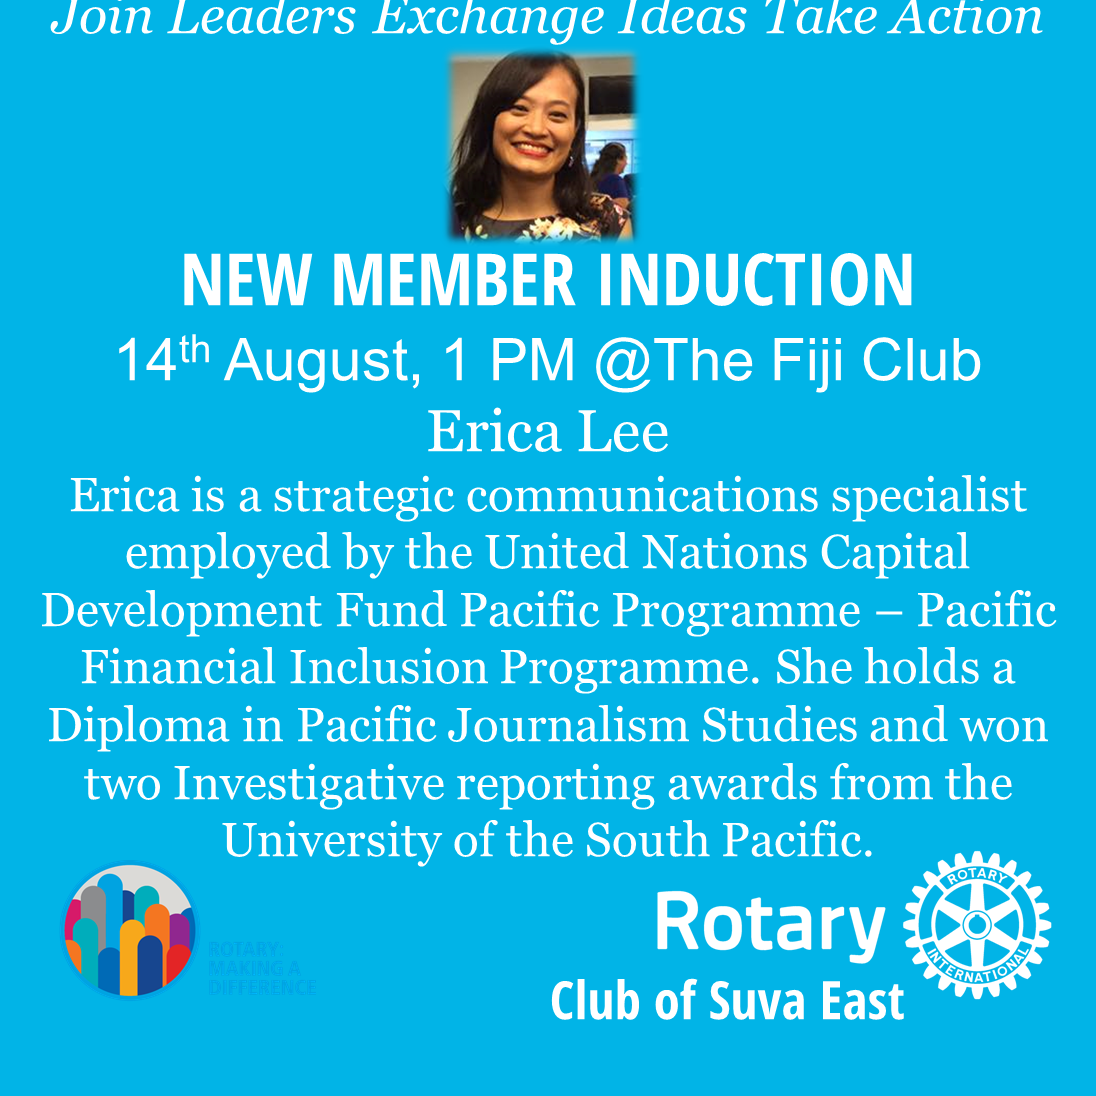 Erica Lee Induction 14th August 1PM Fiji Club